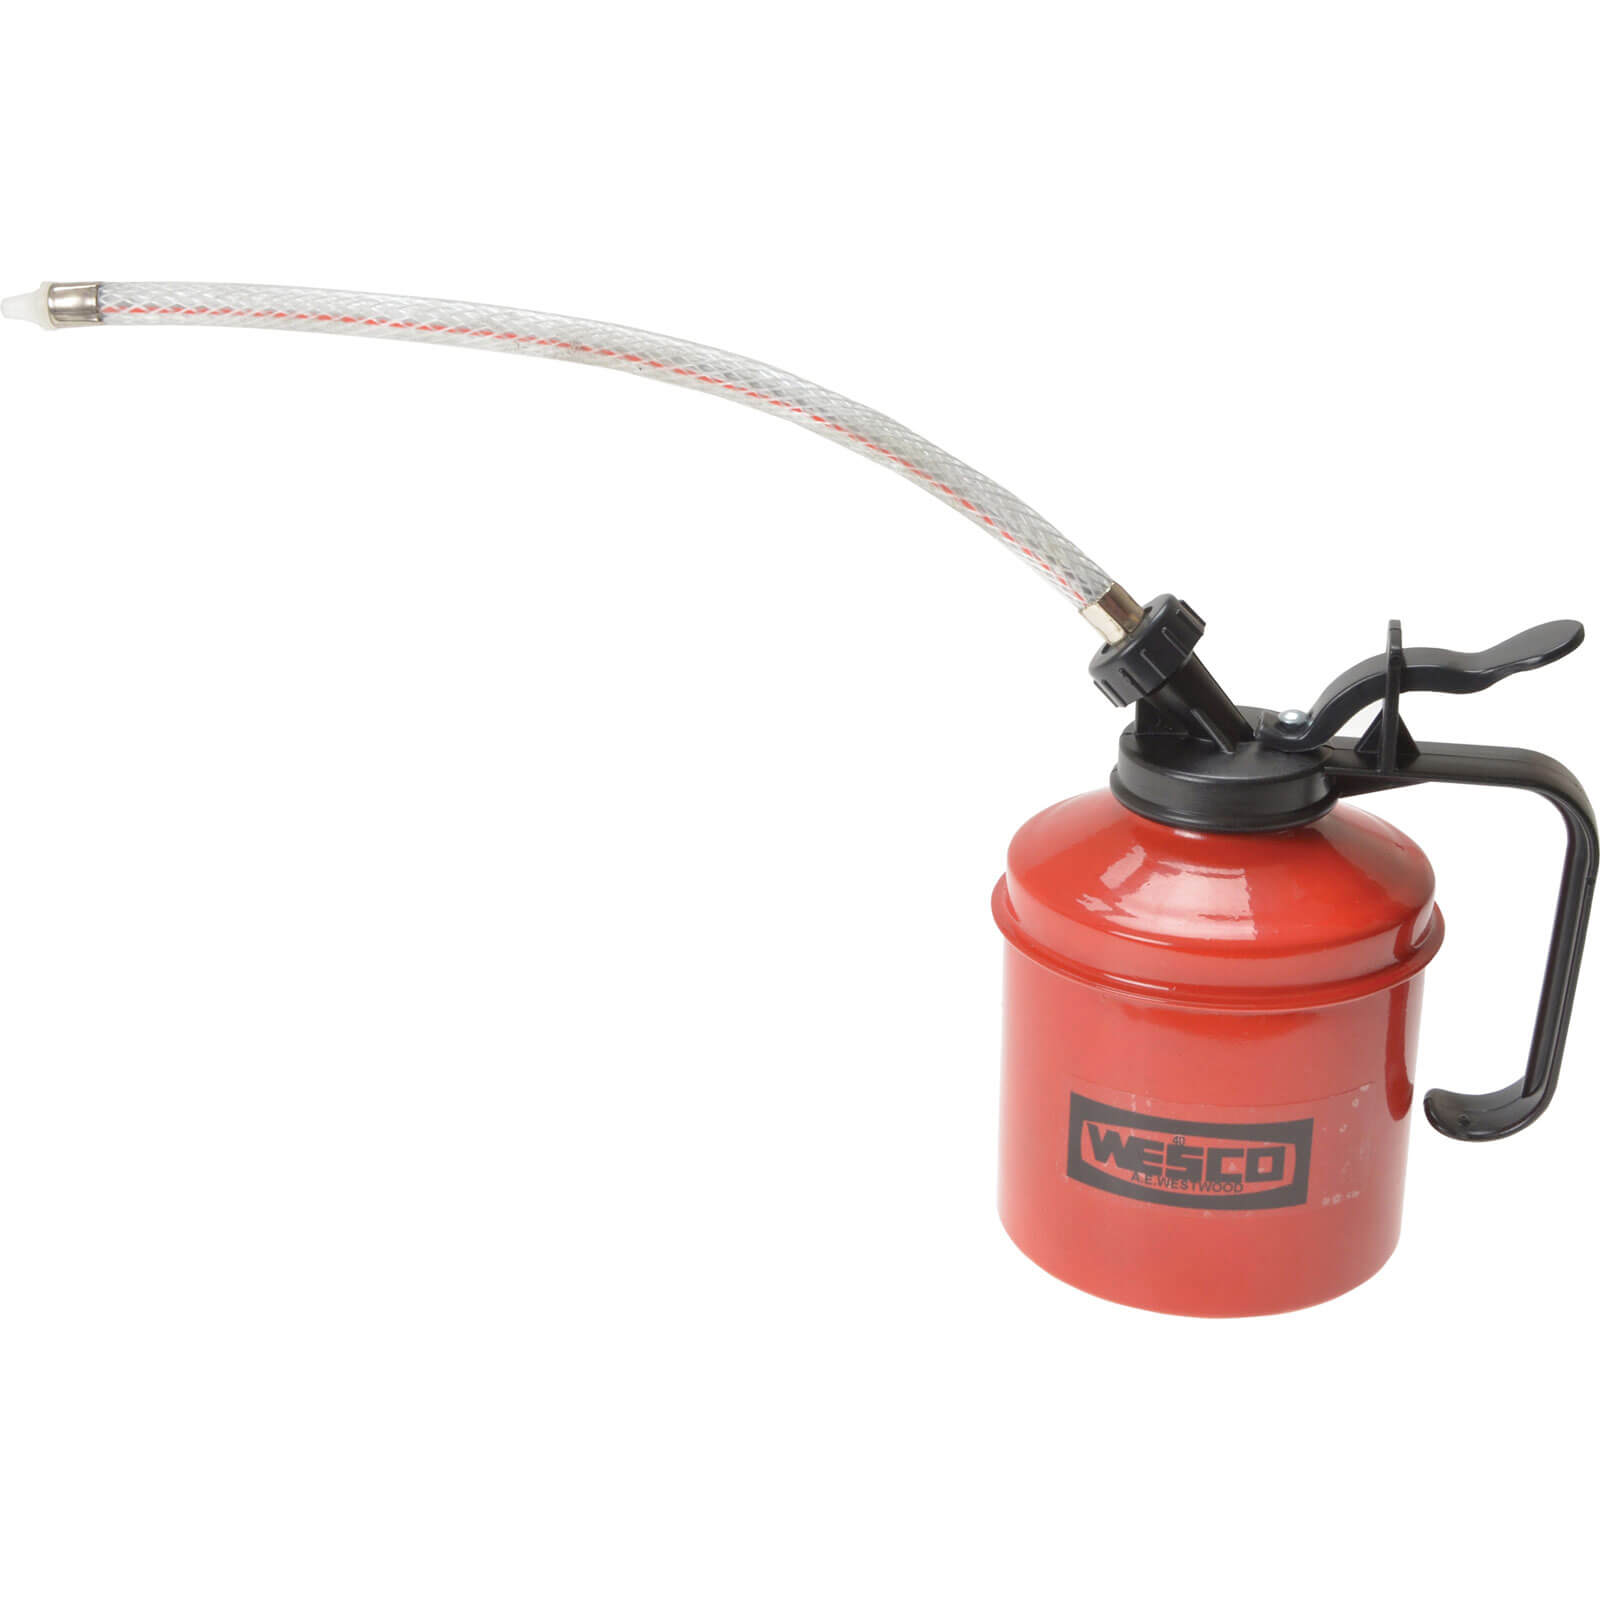 Image of Wesco Metal Oil Can & Flexible Spout 500ml